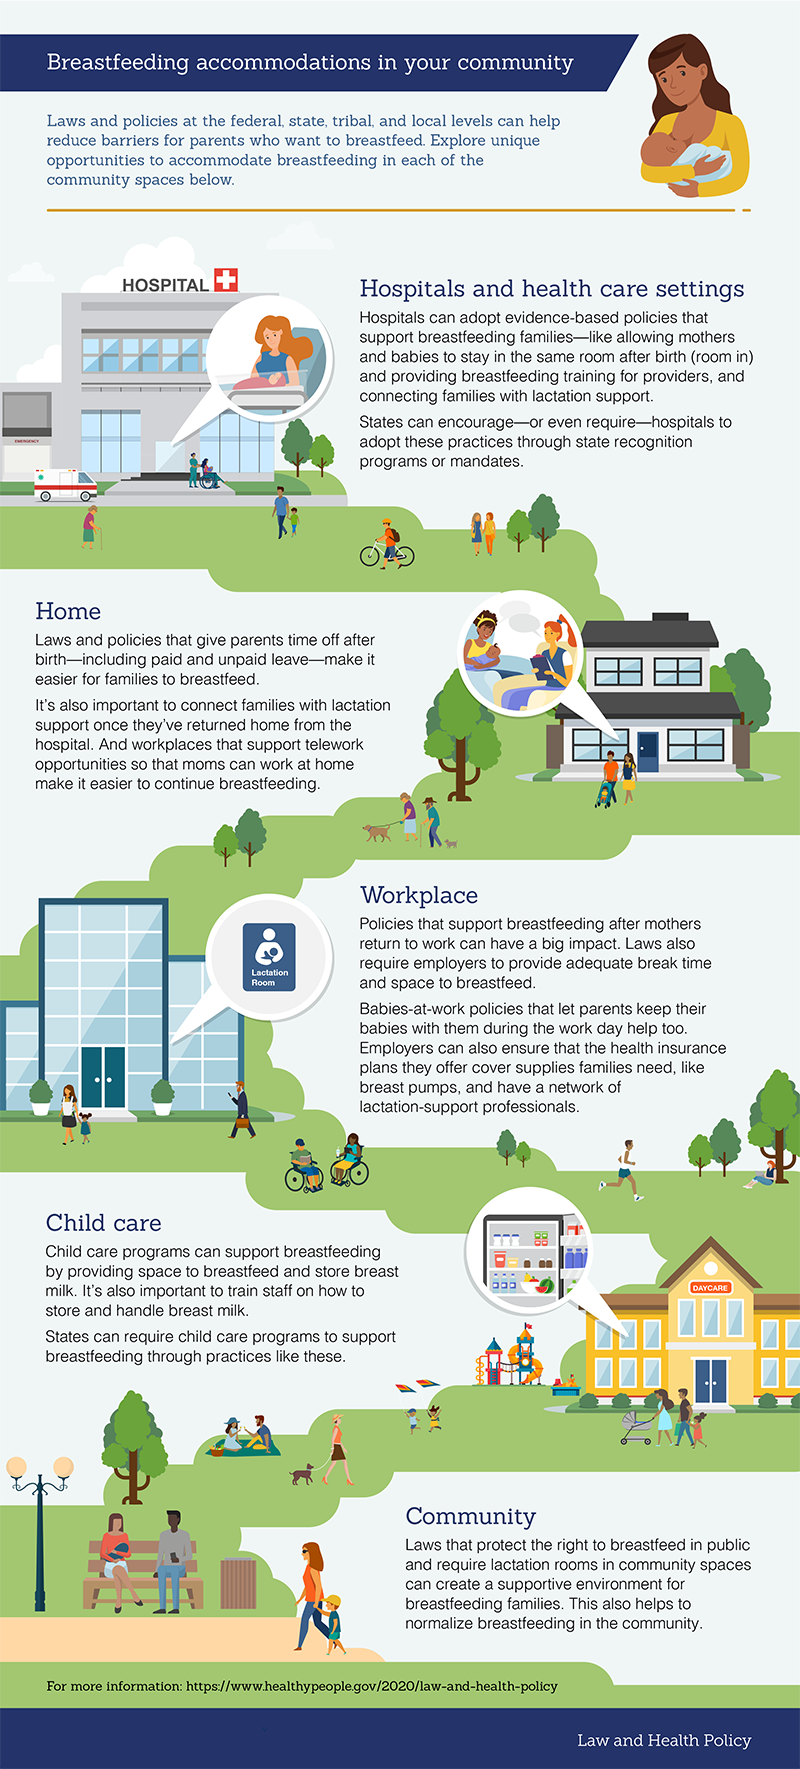 Featured Infographic: Breastfeeding Accommodations in Your Community